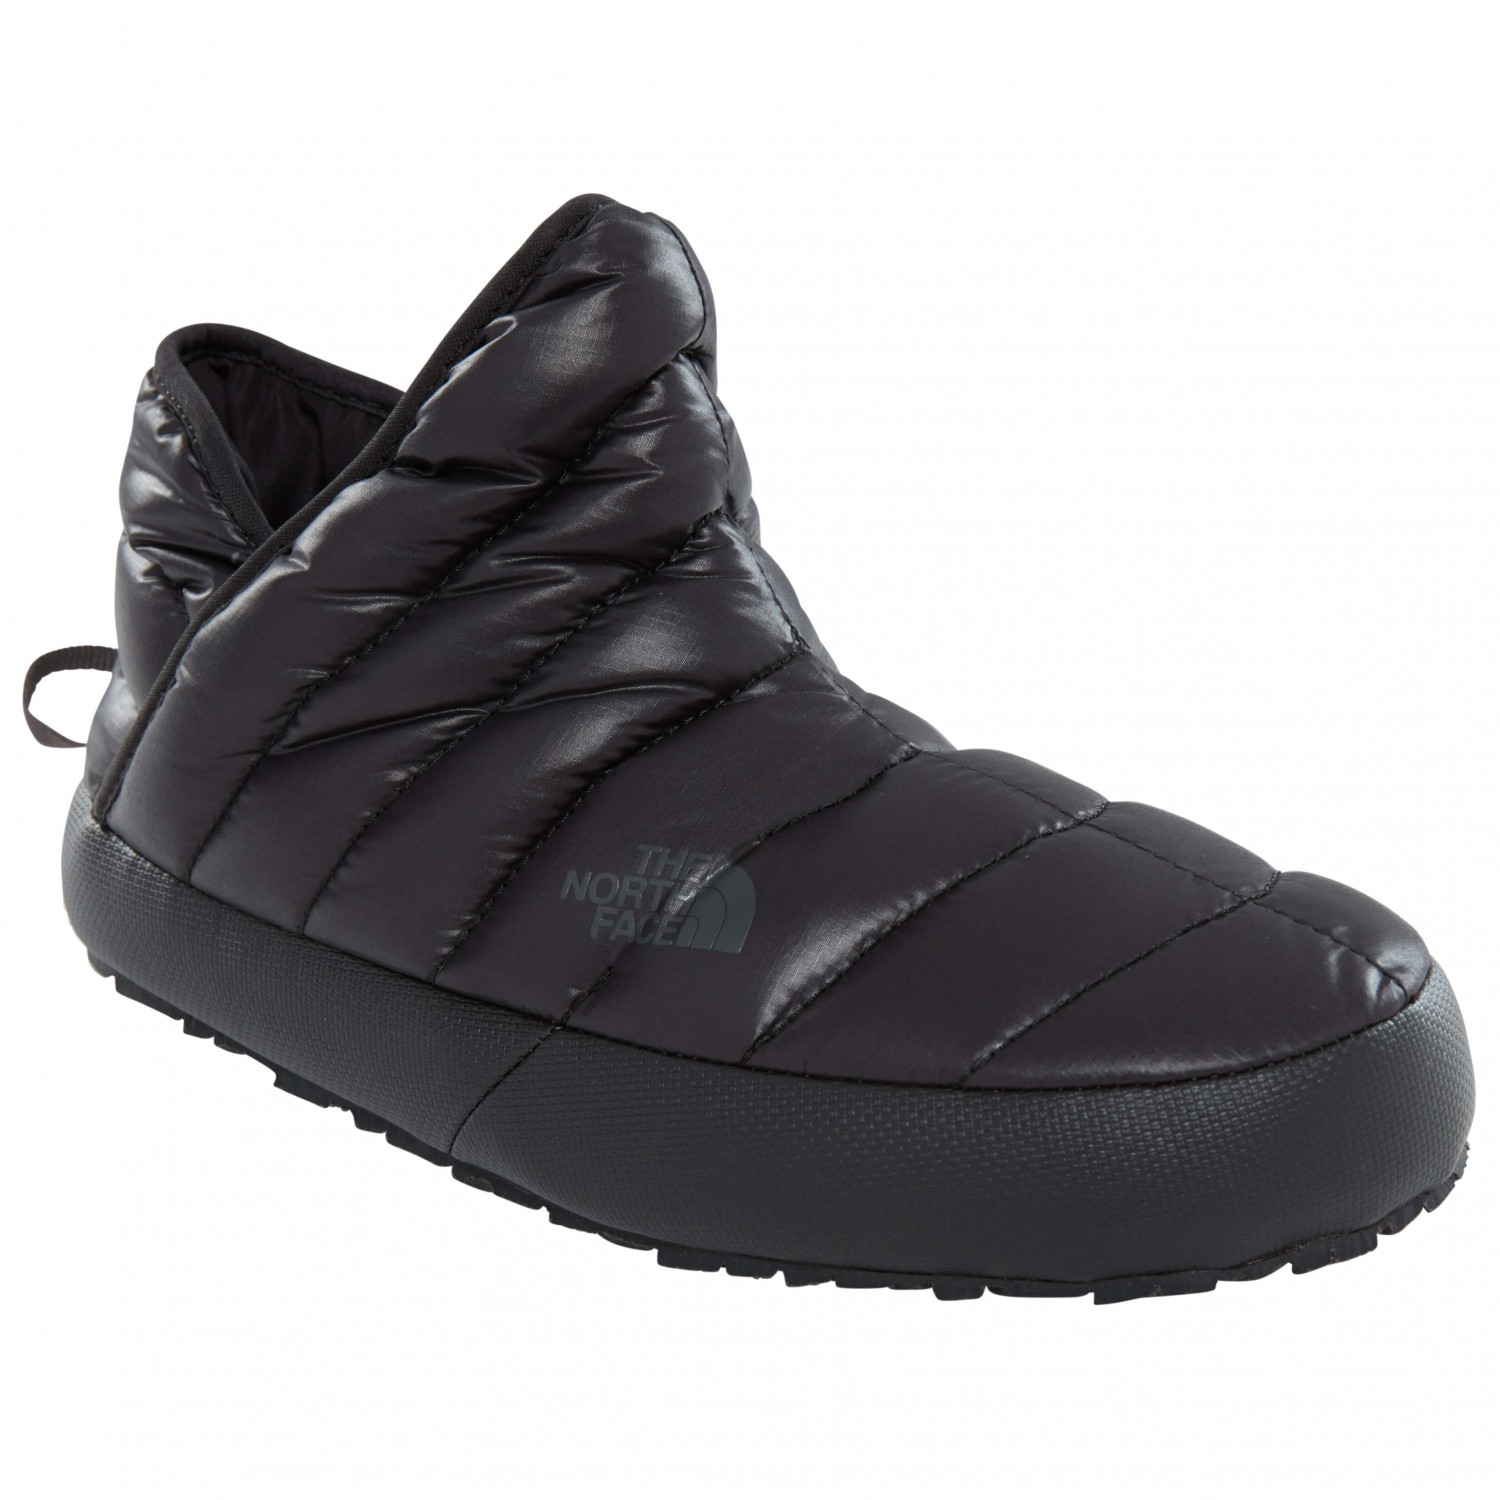 0036cbe59 The North Face - Women's Thermoball Traction Bootie - Slippers - Shiny TNF  Black / Beluga Grey | 10 (US)